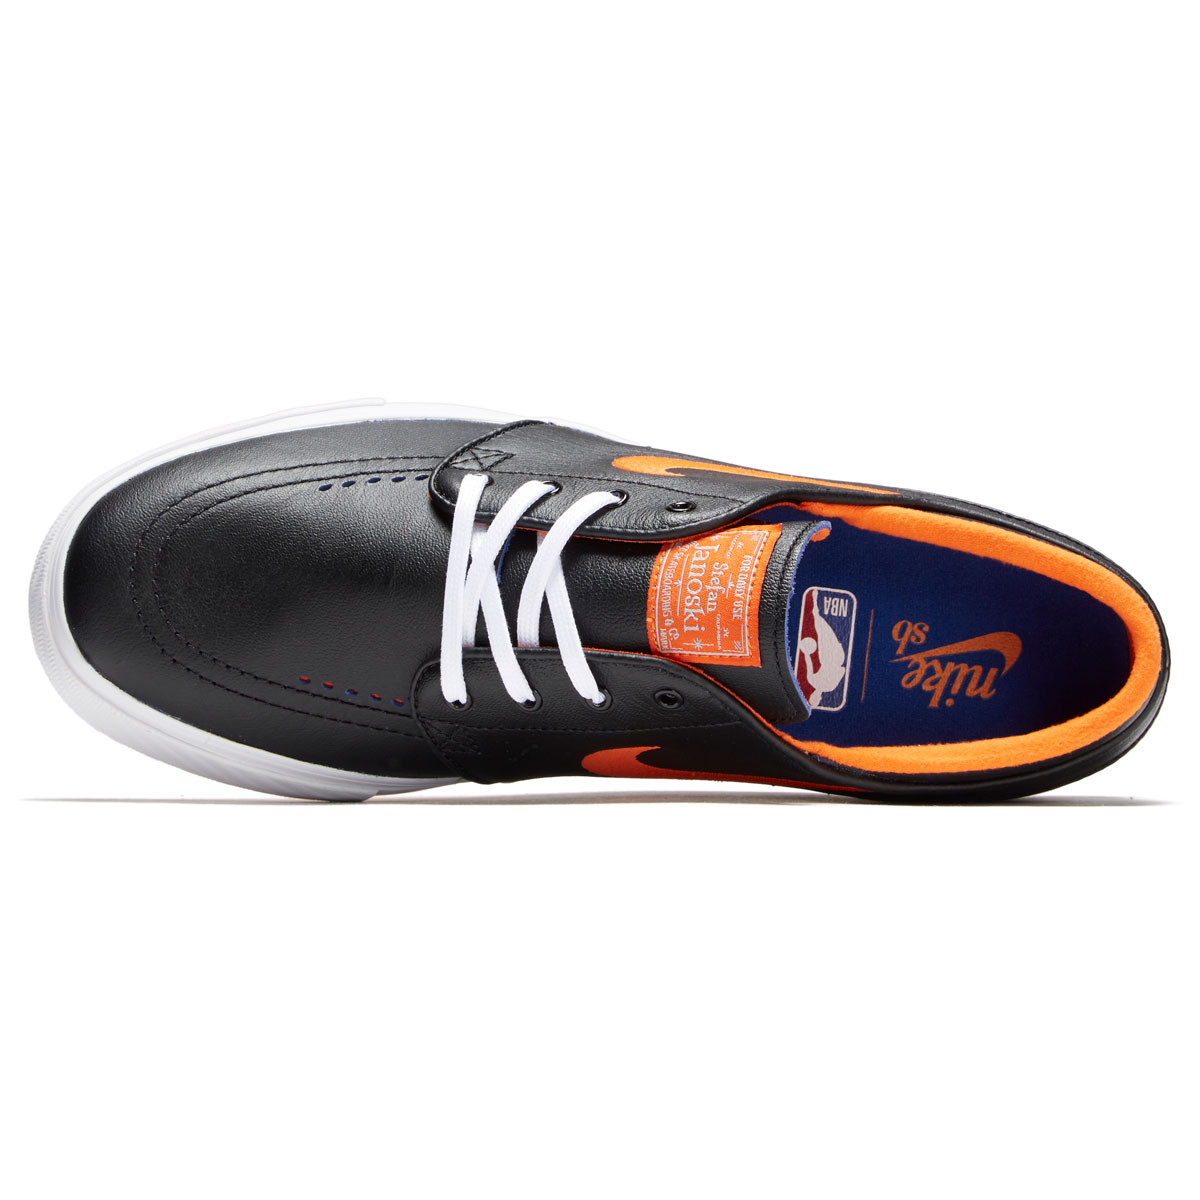 435d6e994 Nike SB x NBA Zoom Janoski Shoes - Black Brilliant Ornge Rush Blue -